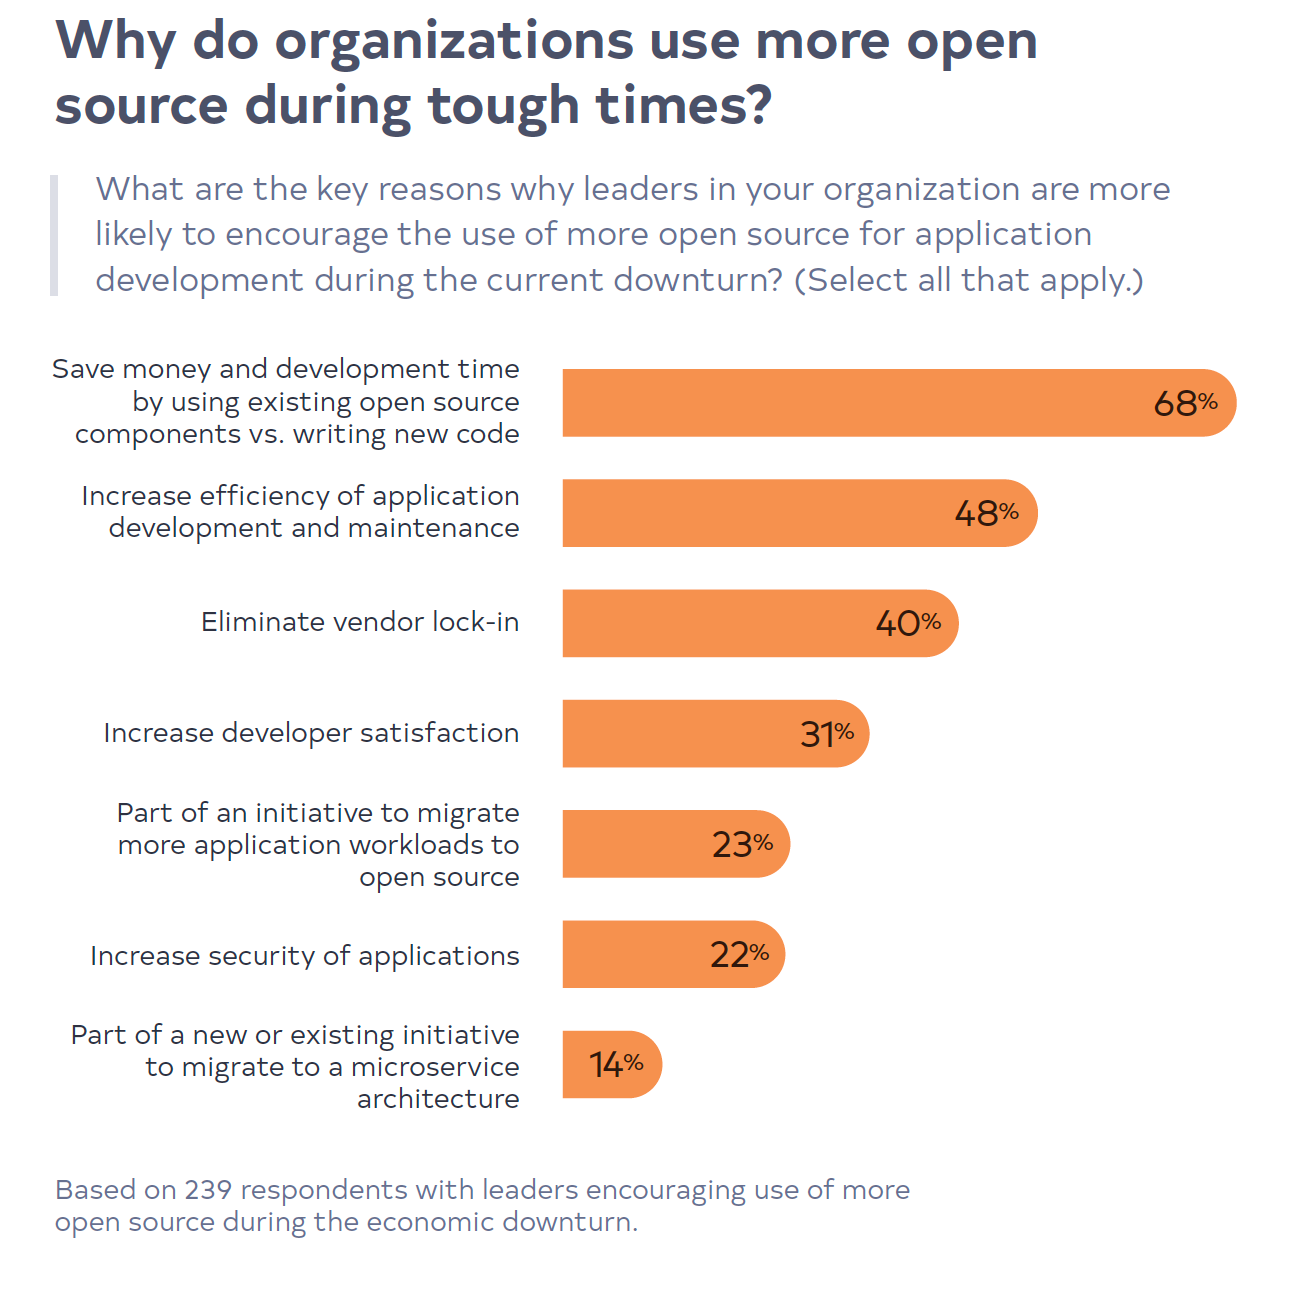 why-do-organizations-use-more-open-source-during-tough-times-2020survey-post-2-figure-1